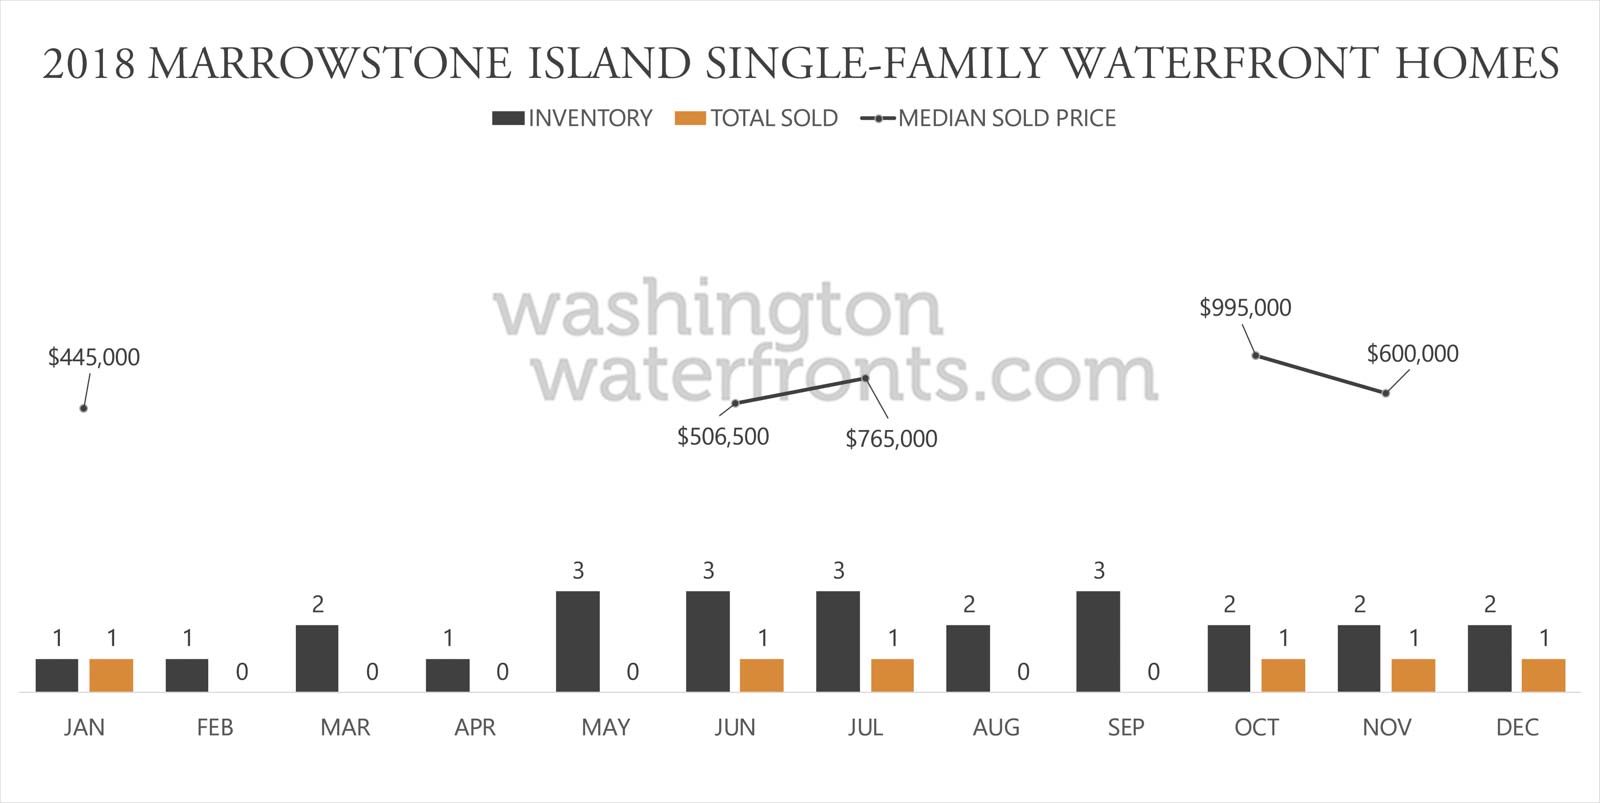 Marrowstone Island Waterfront Inventory